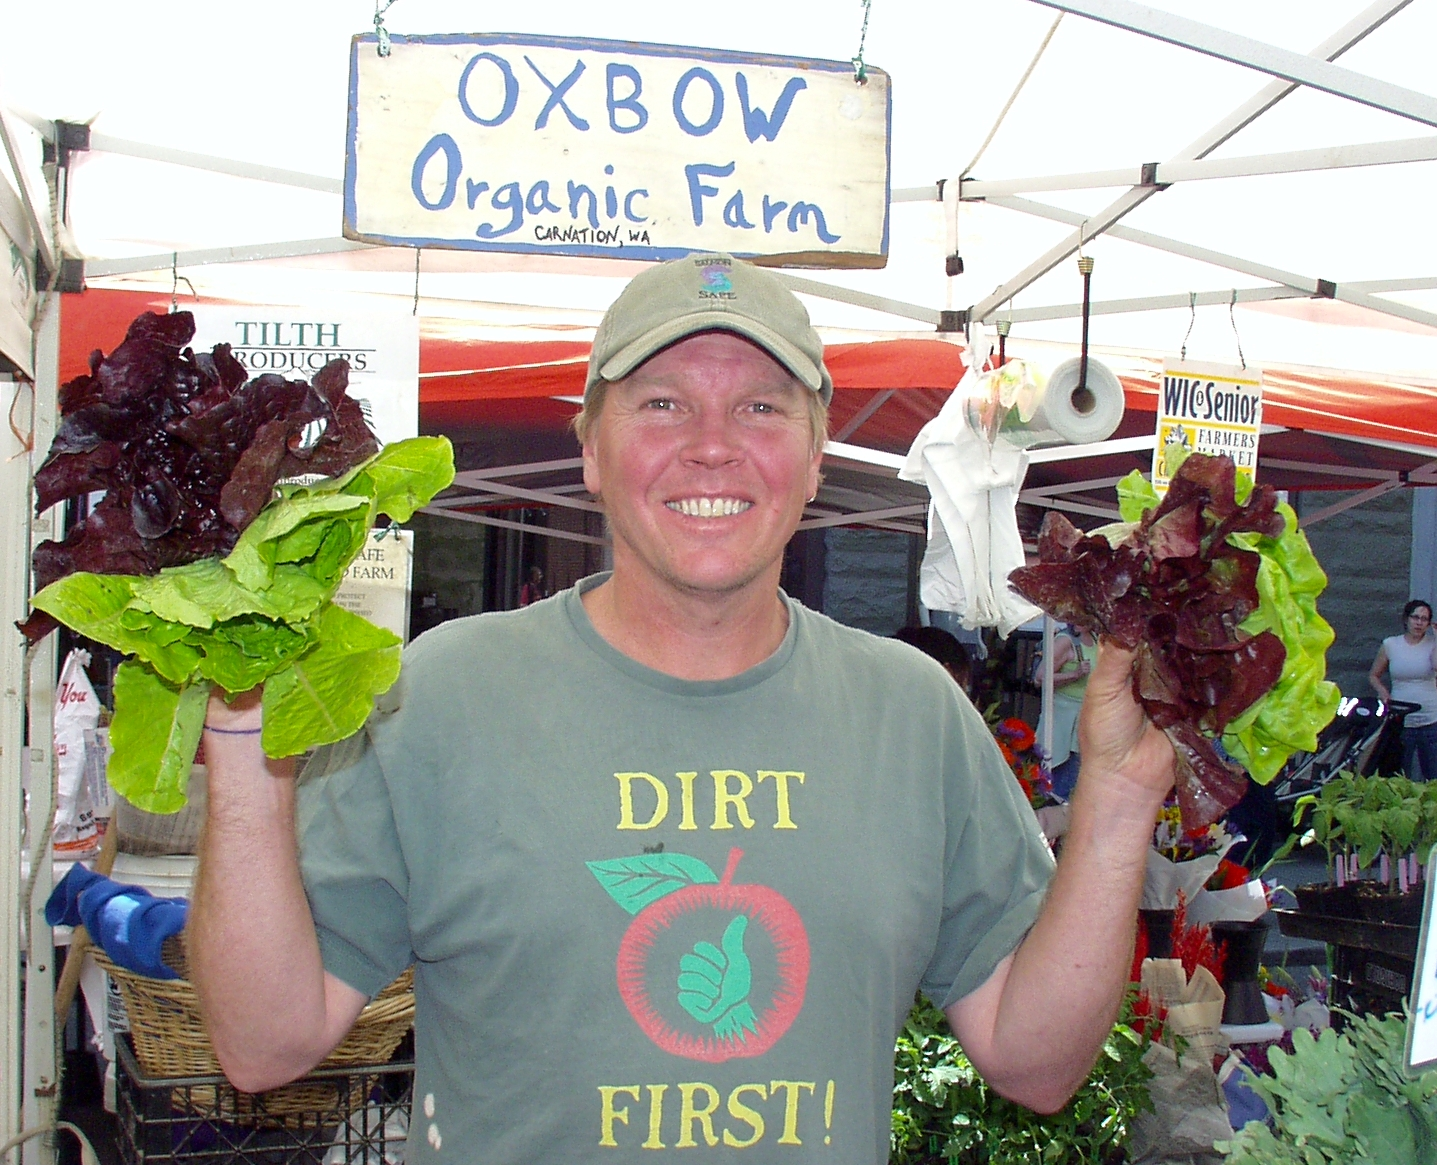 Not huge, but beautiful and delicious, check out this lettuce from Oxbow Farm. Photo copyright 2009 by Zachary D. Lyons.